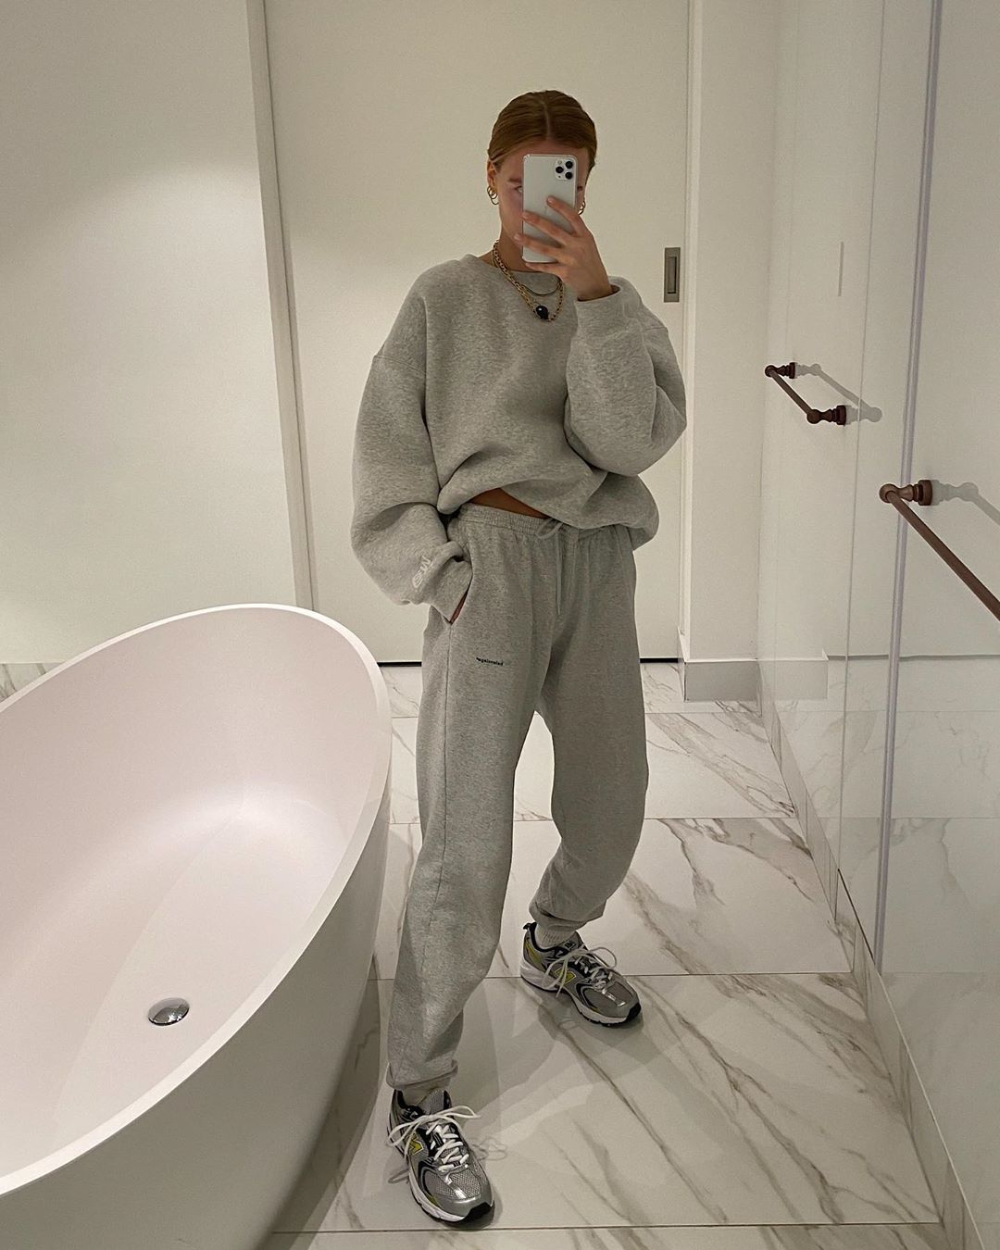 Marie Von Behrens Mvb Foto I Video V Instagram In 2020 Comfy Outfits Fashion Sweats Outfit